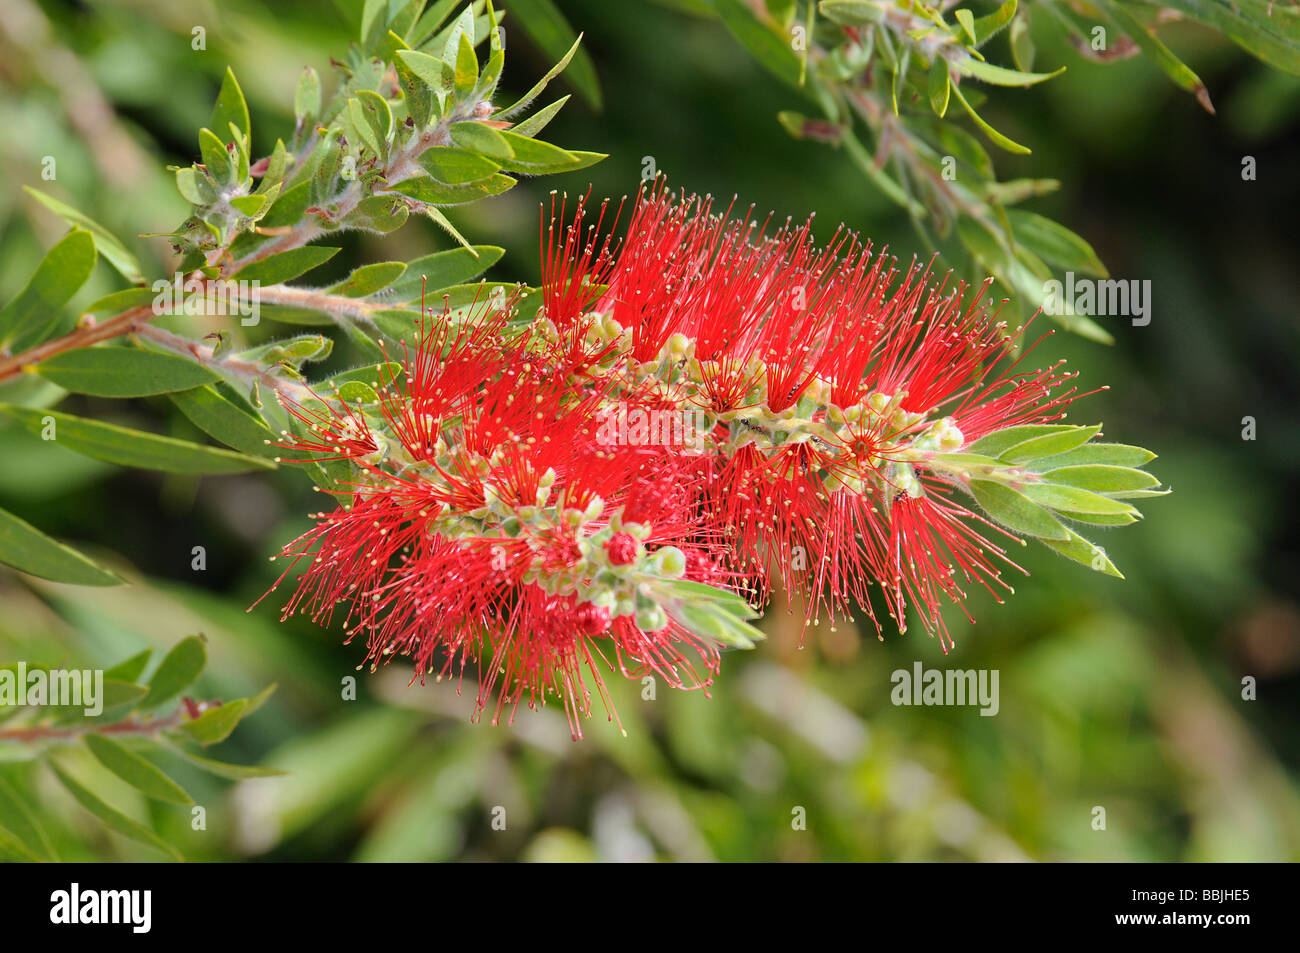 Banksia blossoms - Stock Image